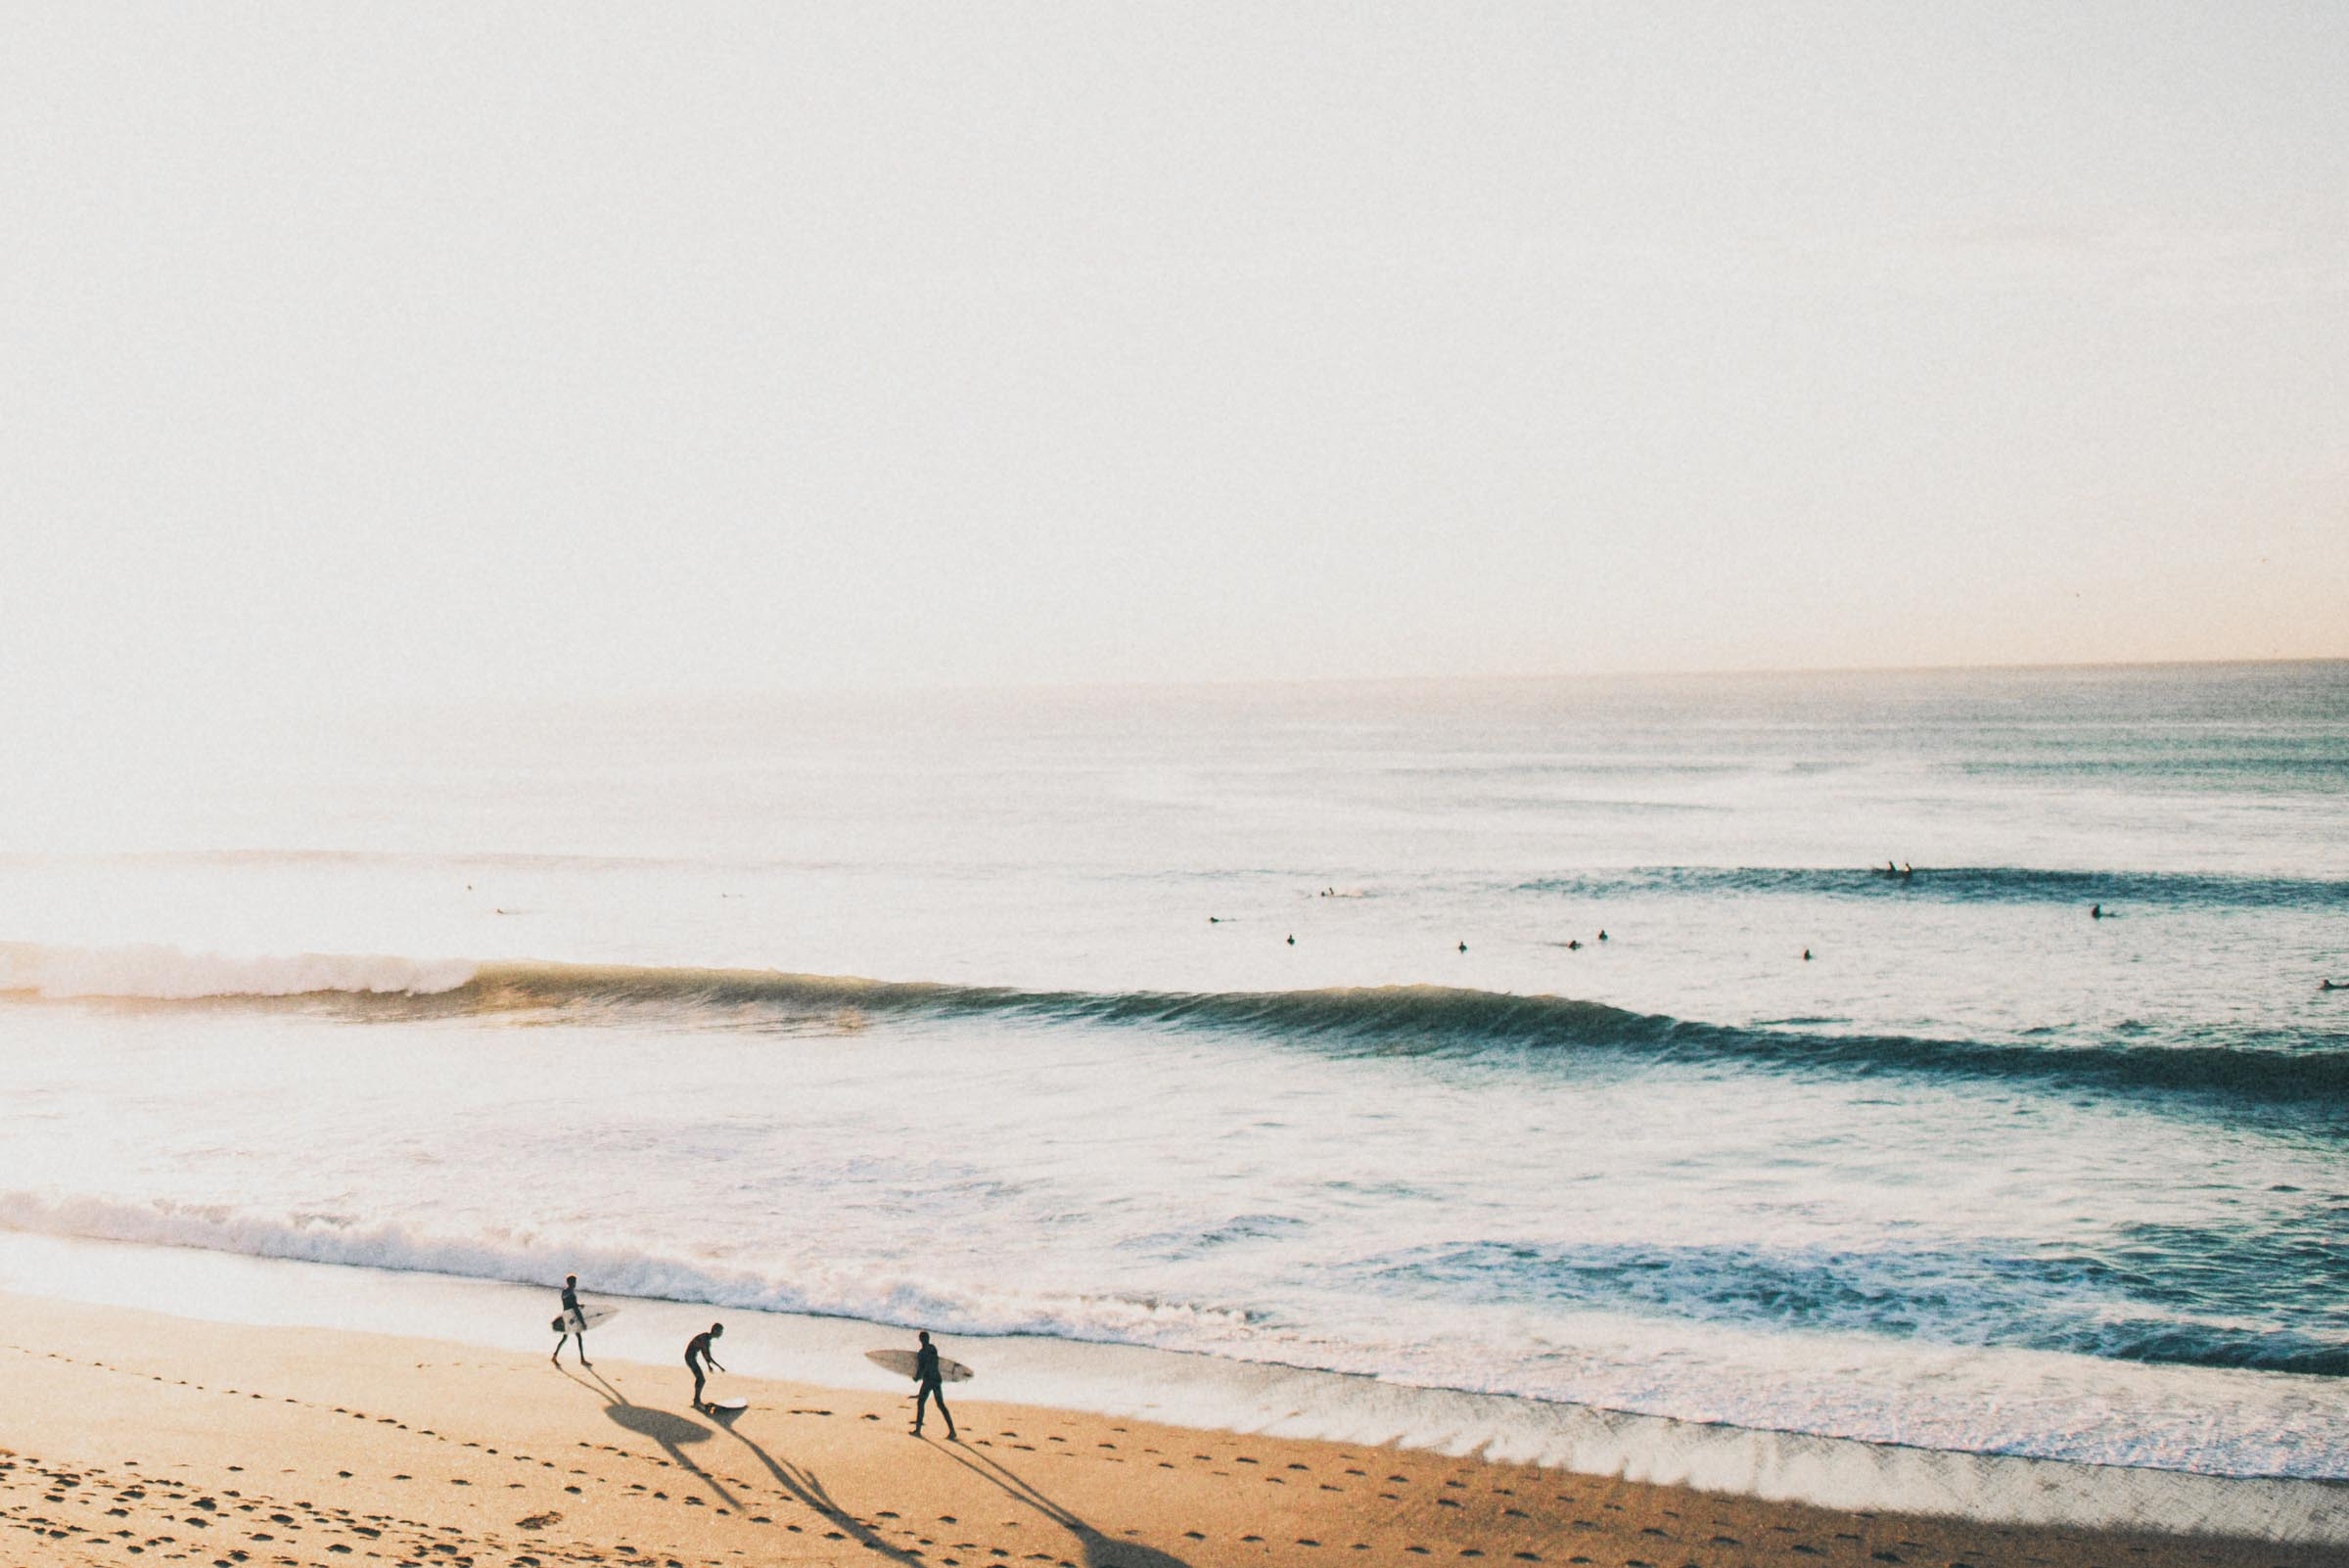 a wedding with surfers